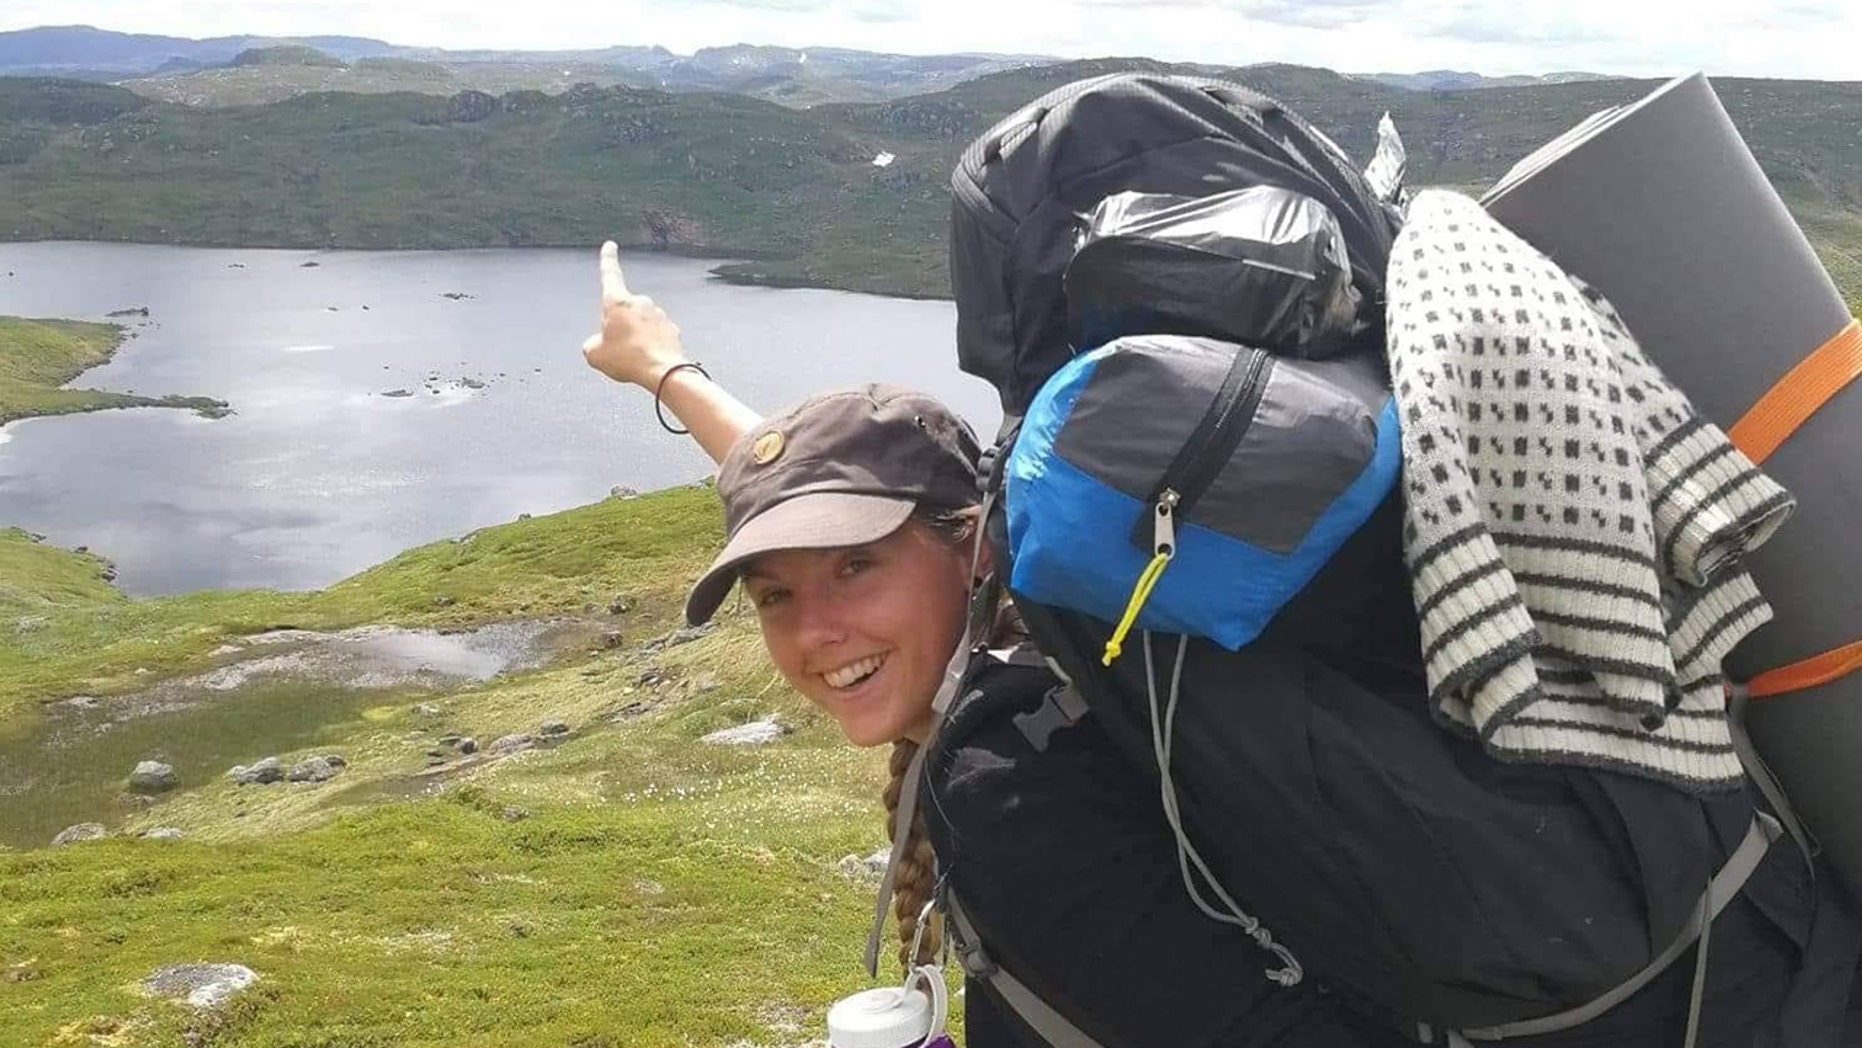 Maren Ueland, 28, from Denmark, was attacked while sleeping in her tent Monday, police believe